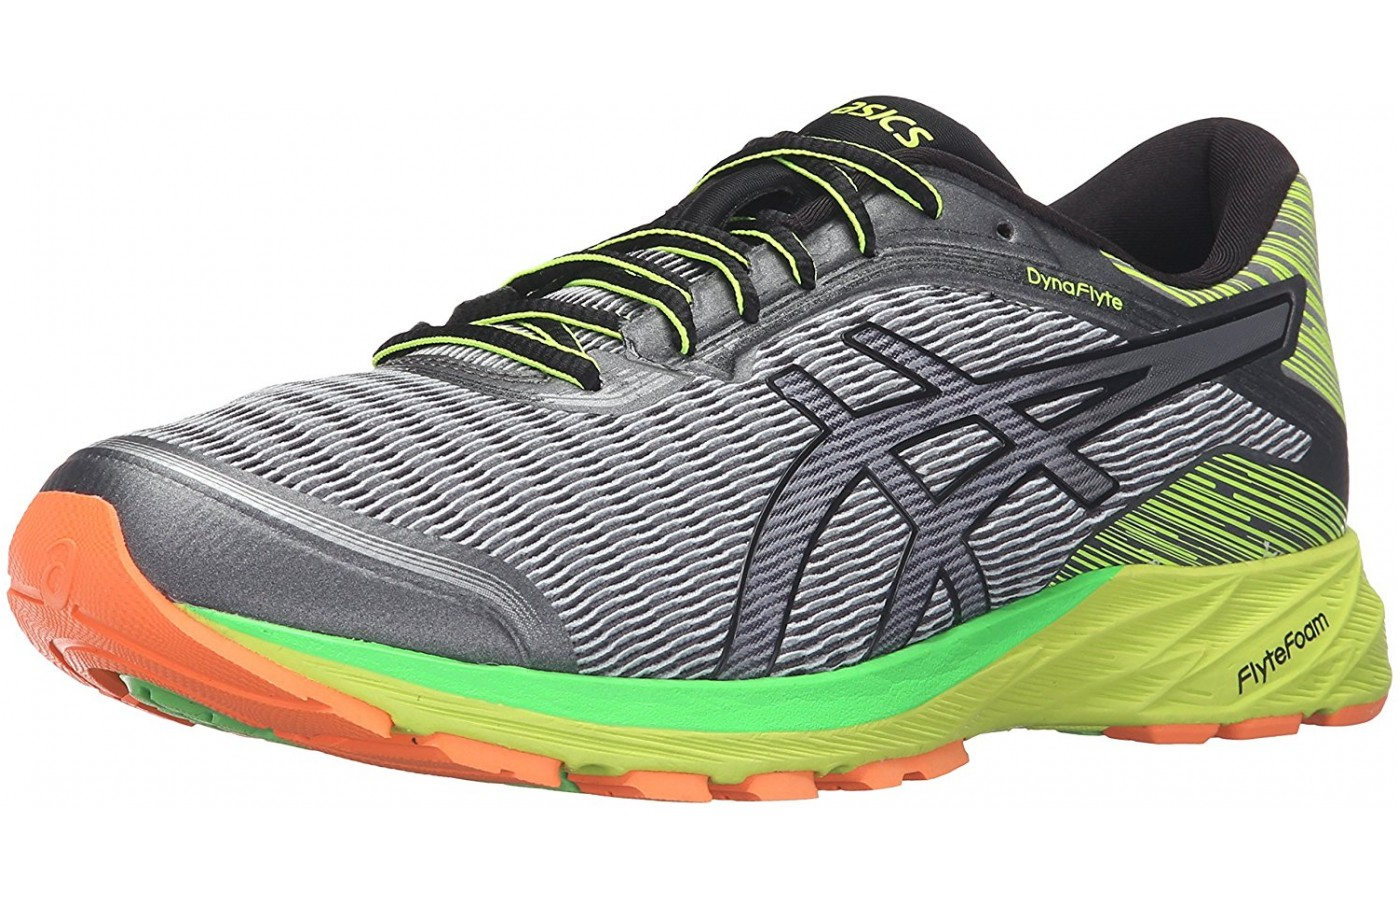 cheap for discount 9683e 370f4 Asics DynaFlyte Reviewed & Tested for Performance